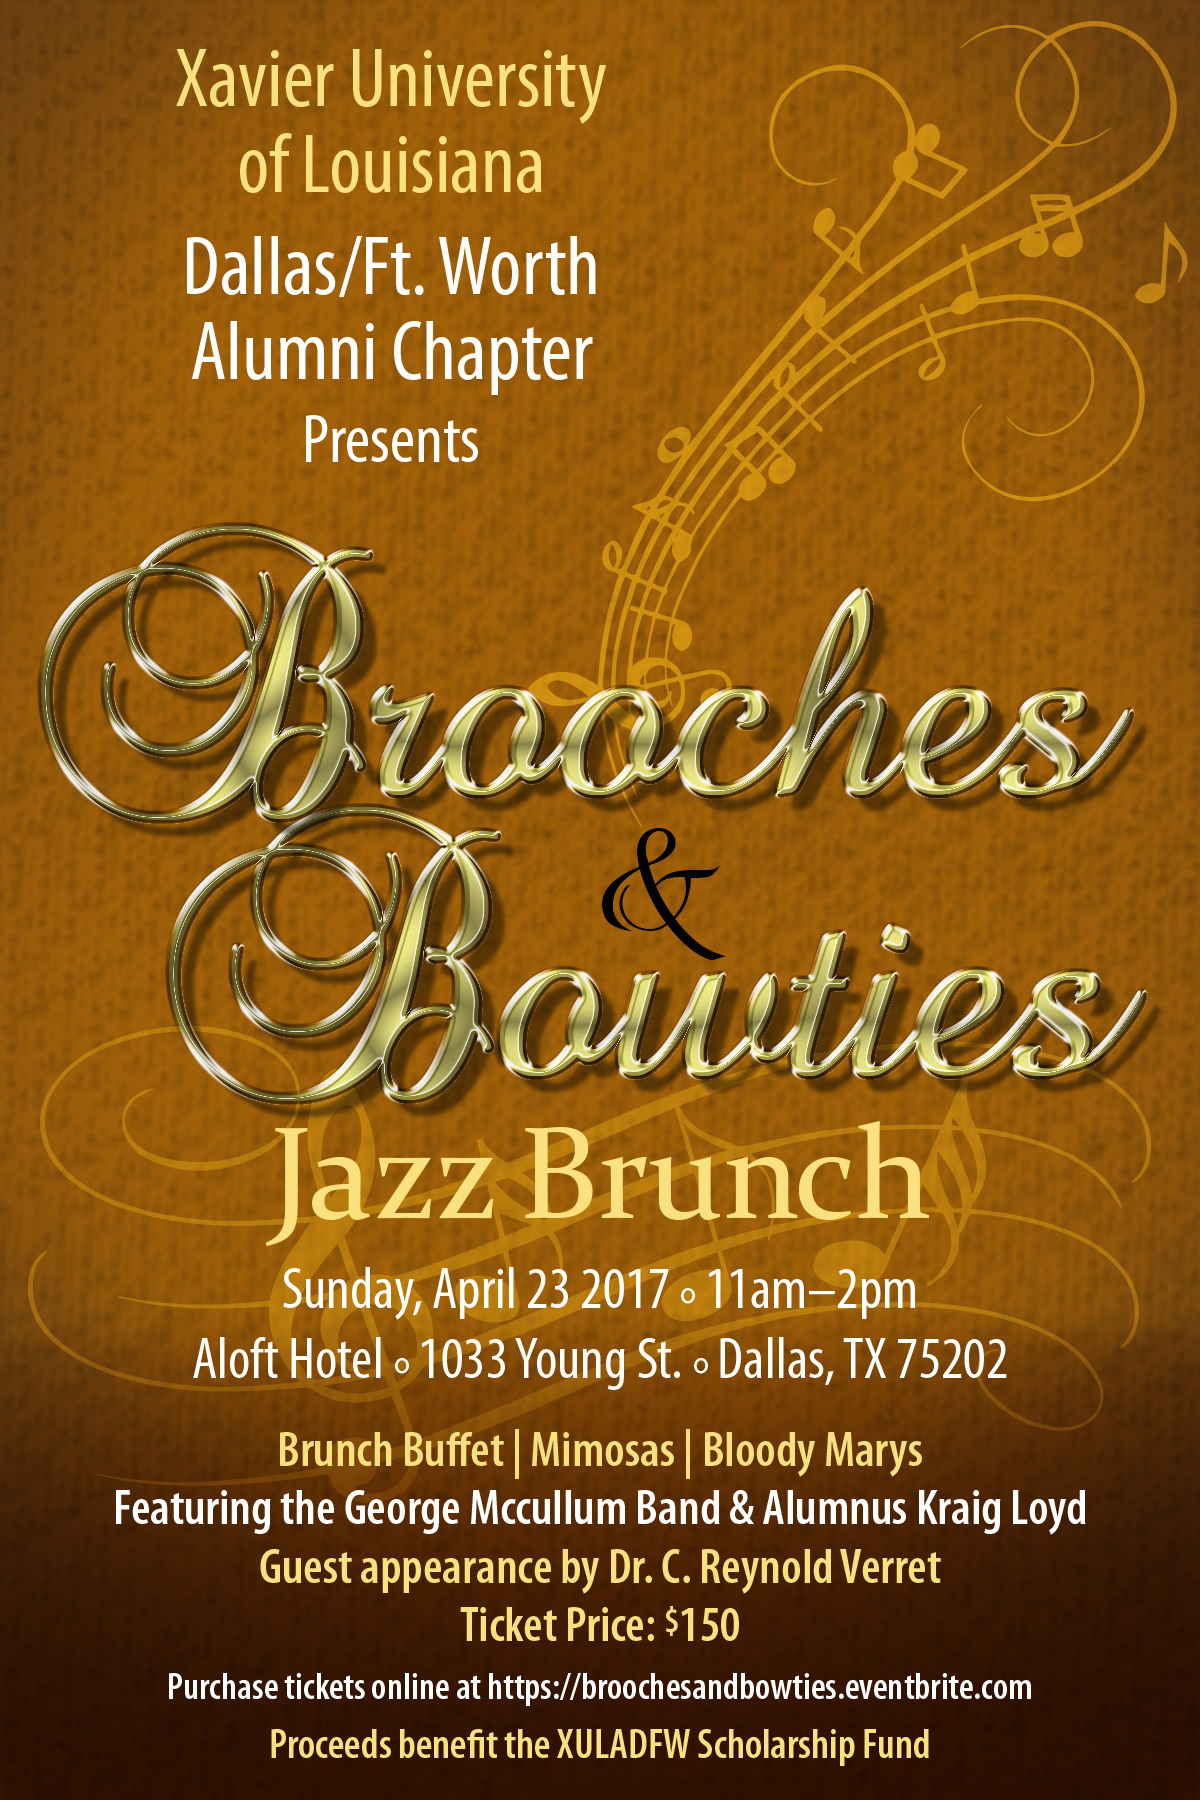 Xavier University of La. DFW Alumni Chapter's Brooches & Bowties Jazz Brunch